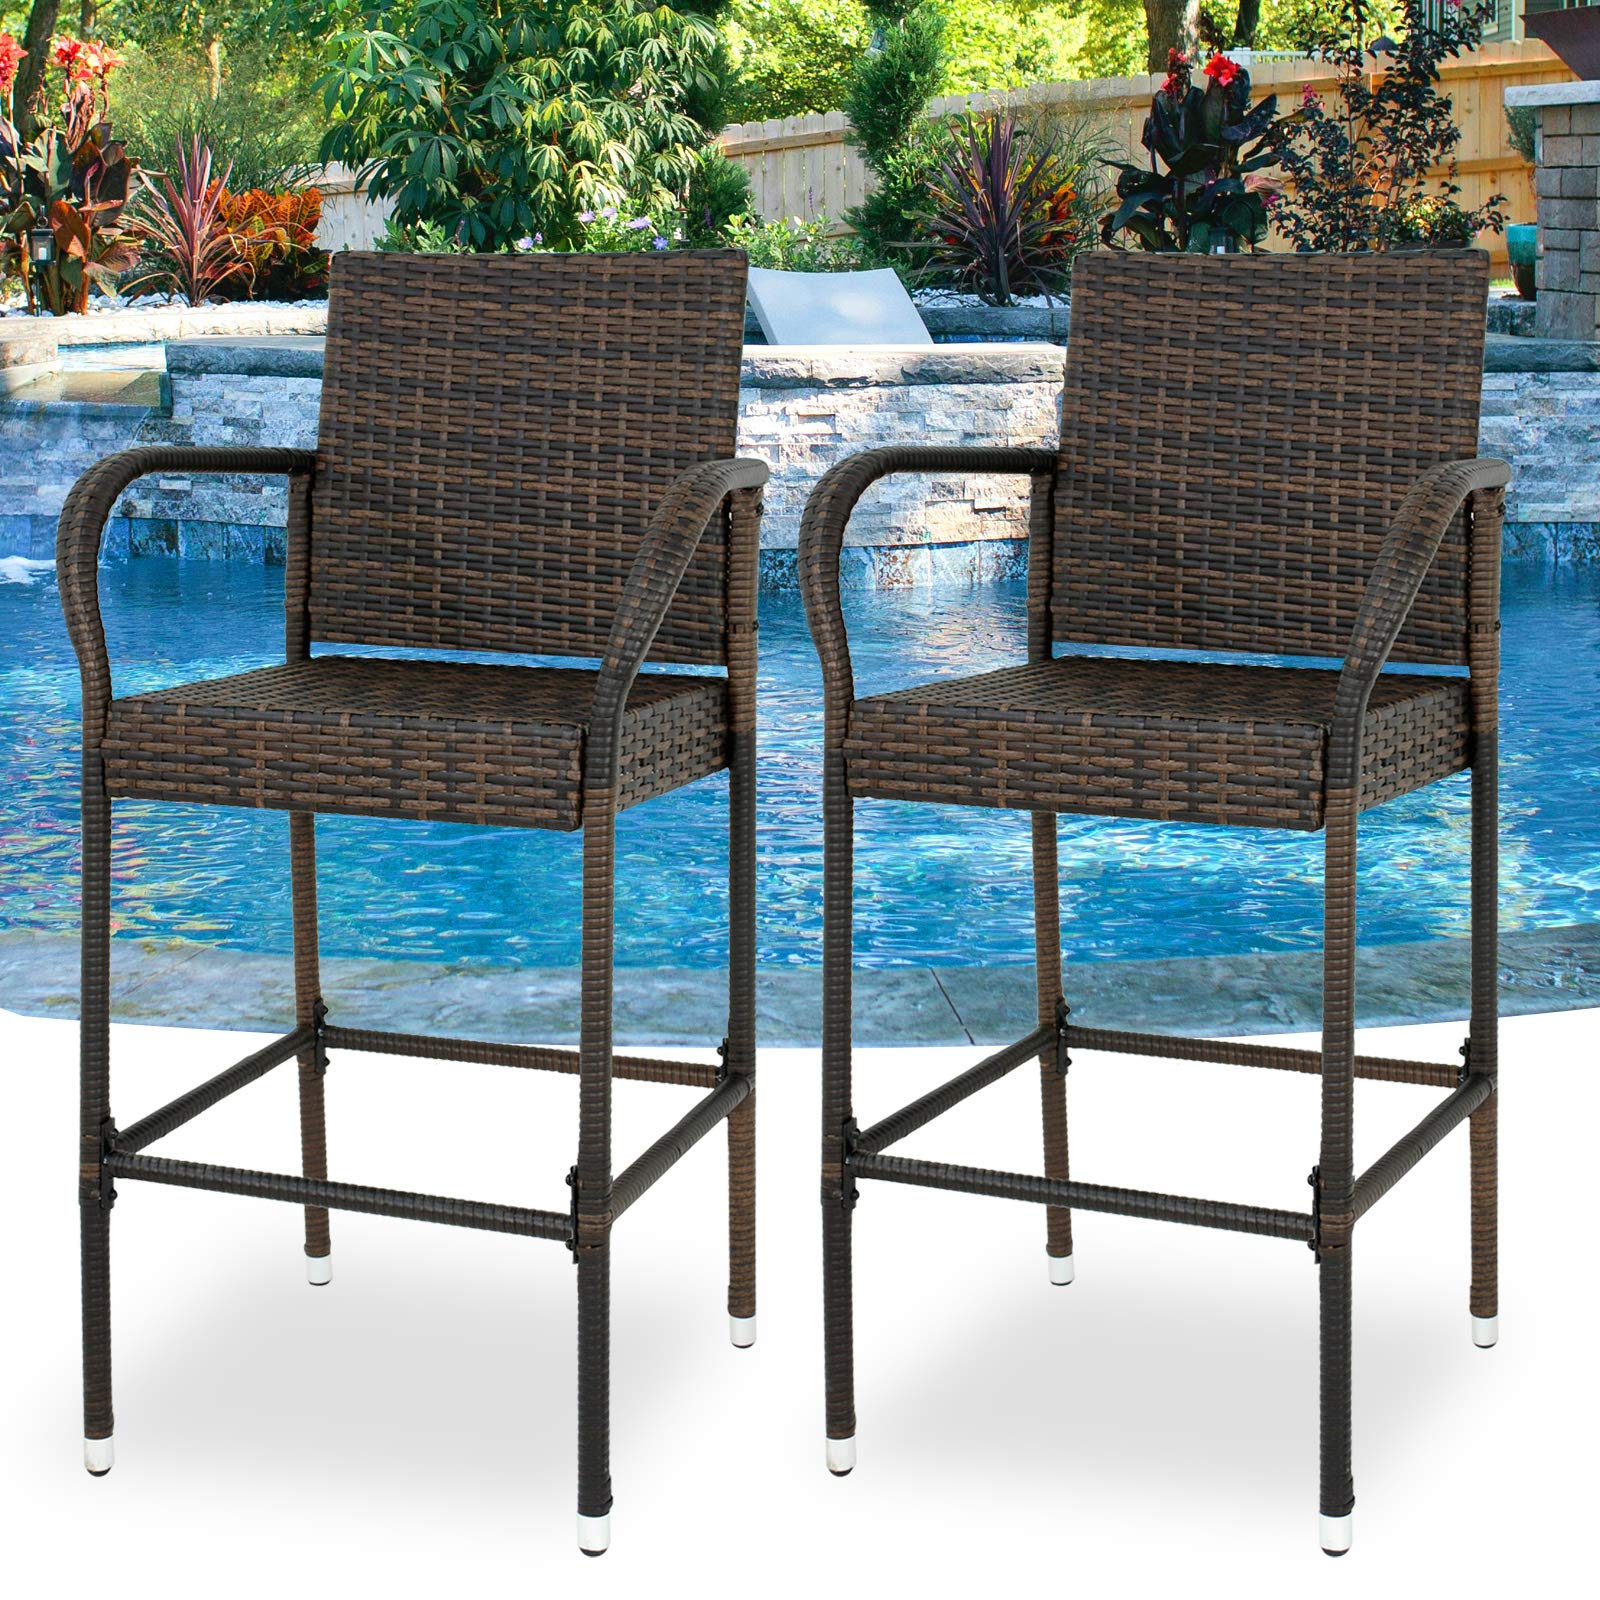 SUPER DEAL Upgraded Wicker Bar Stool Chairs Outdoor Backyard Rattan Chair w/Iron Frame, Armrest and Footrest (2) by SUPER DEAL